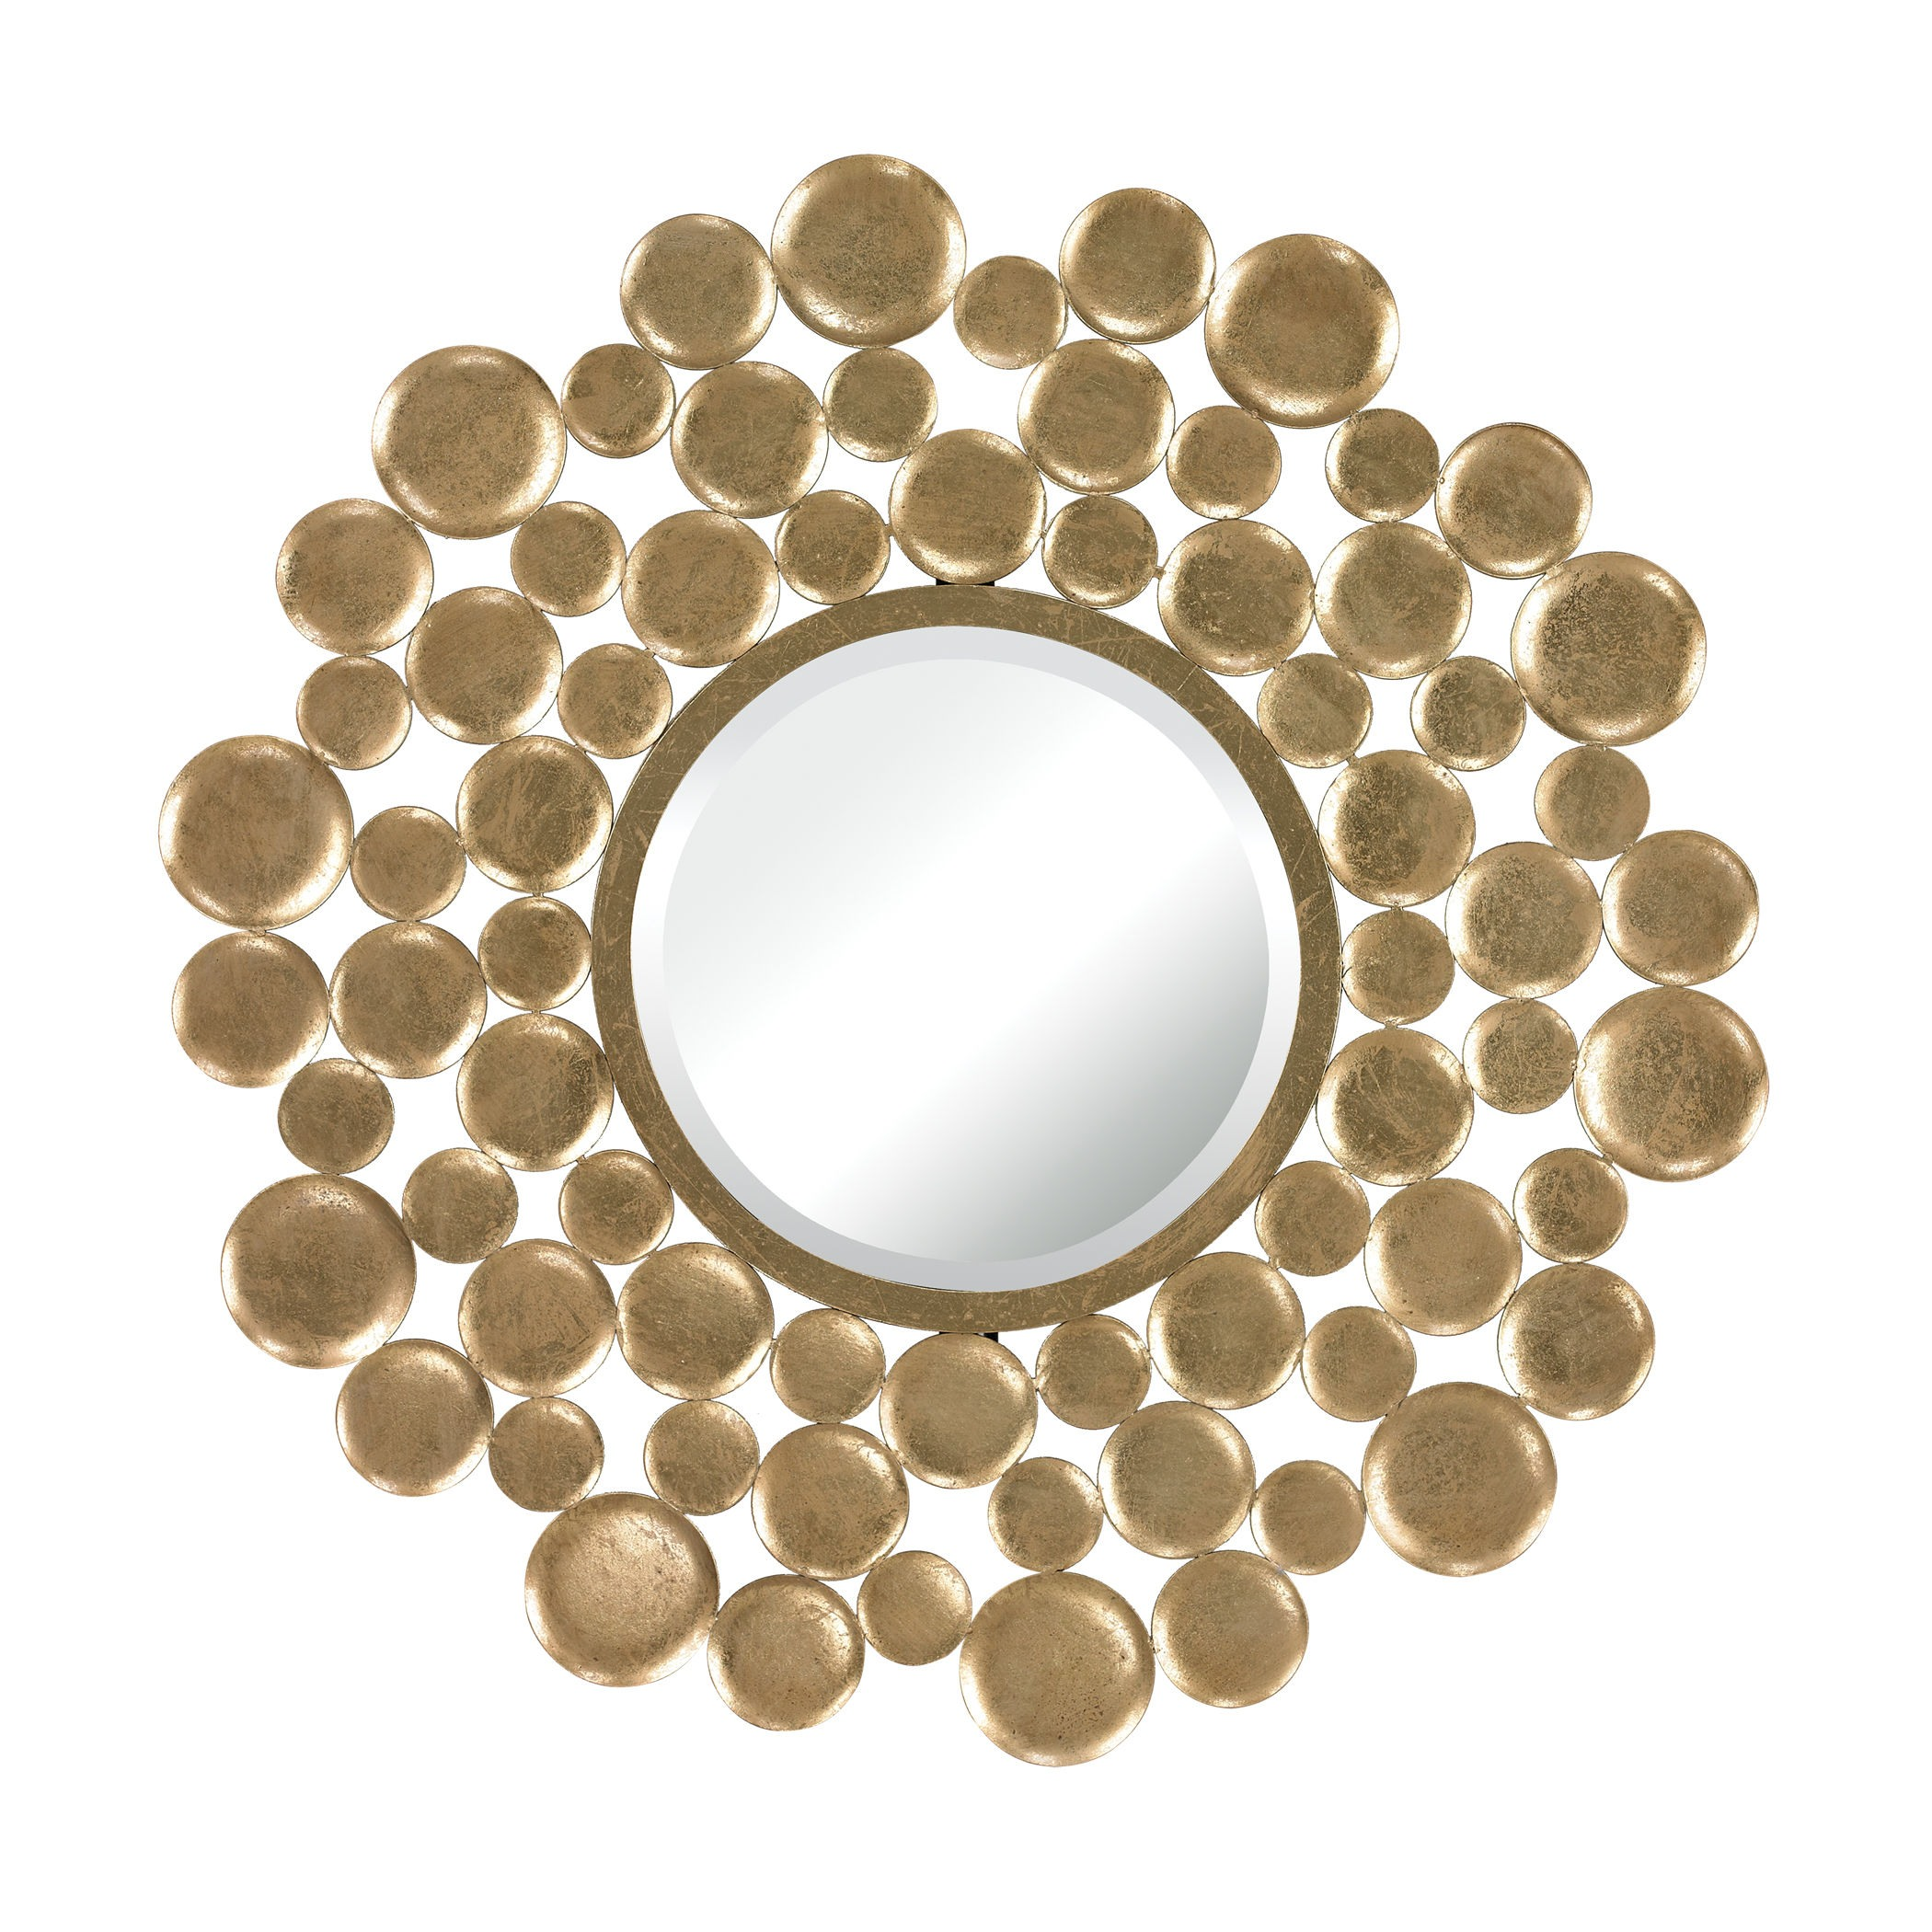 Sterling Industries-132-003-Beattystown - 32 Inch Decorative Mirror  Gold Leaf Finish with Clear Glass